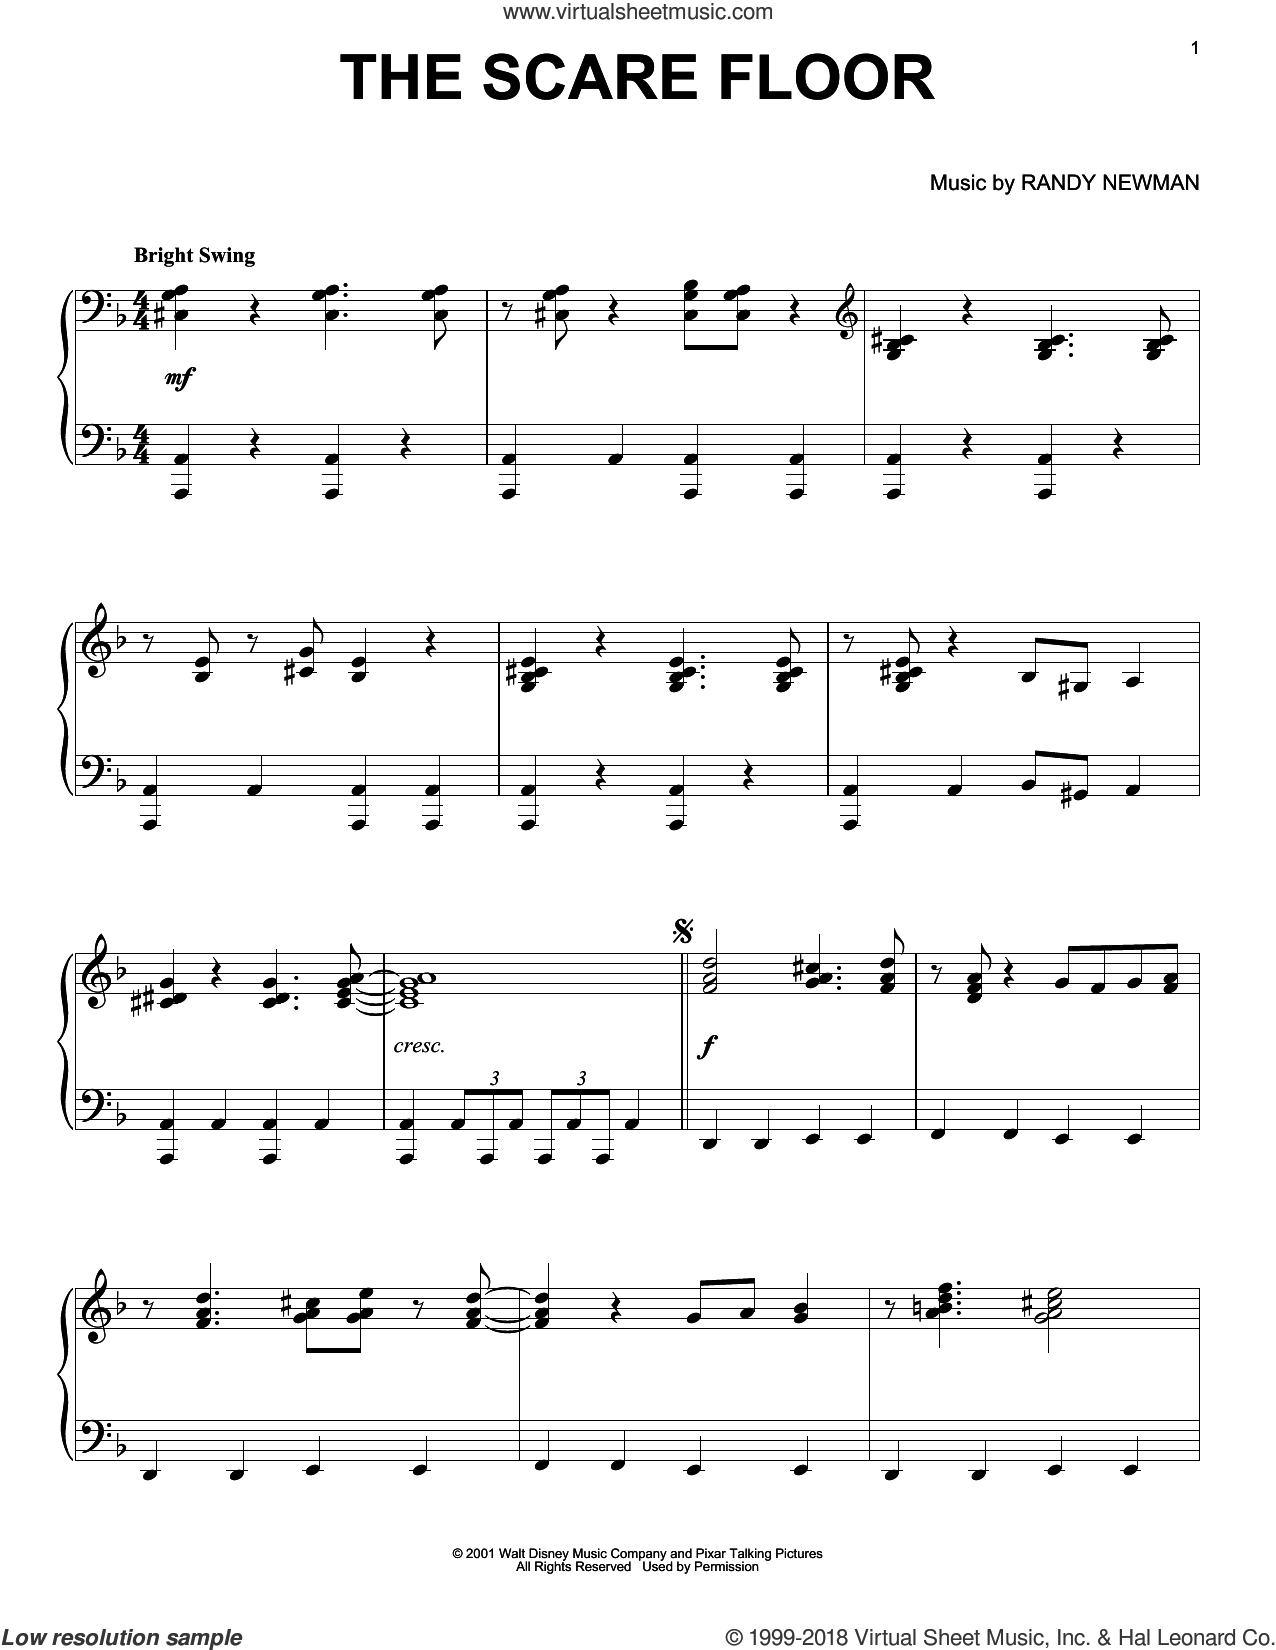 The Scare Floor sheet music for piano solo by Randy Newman